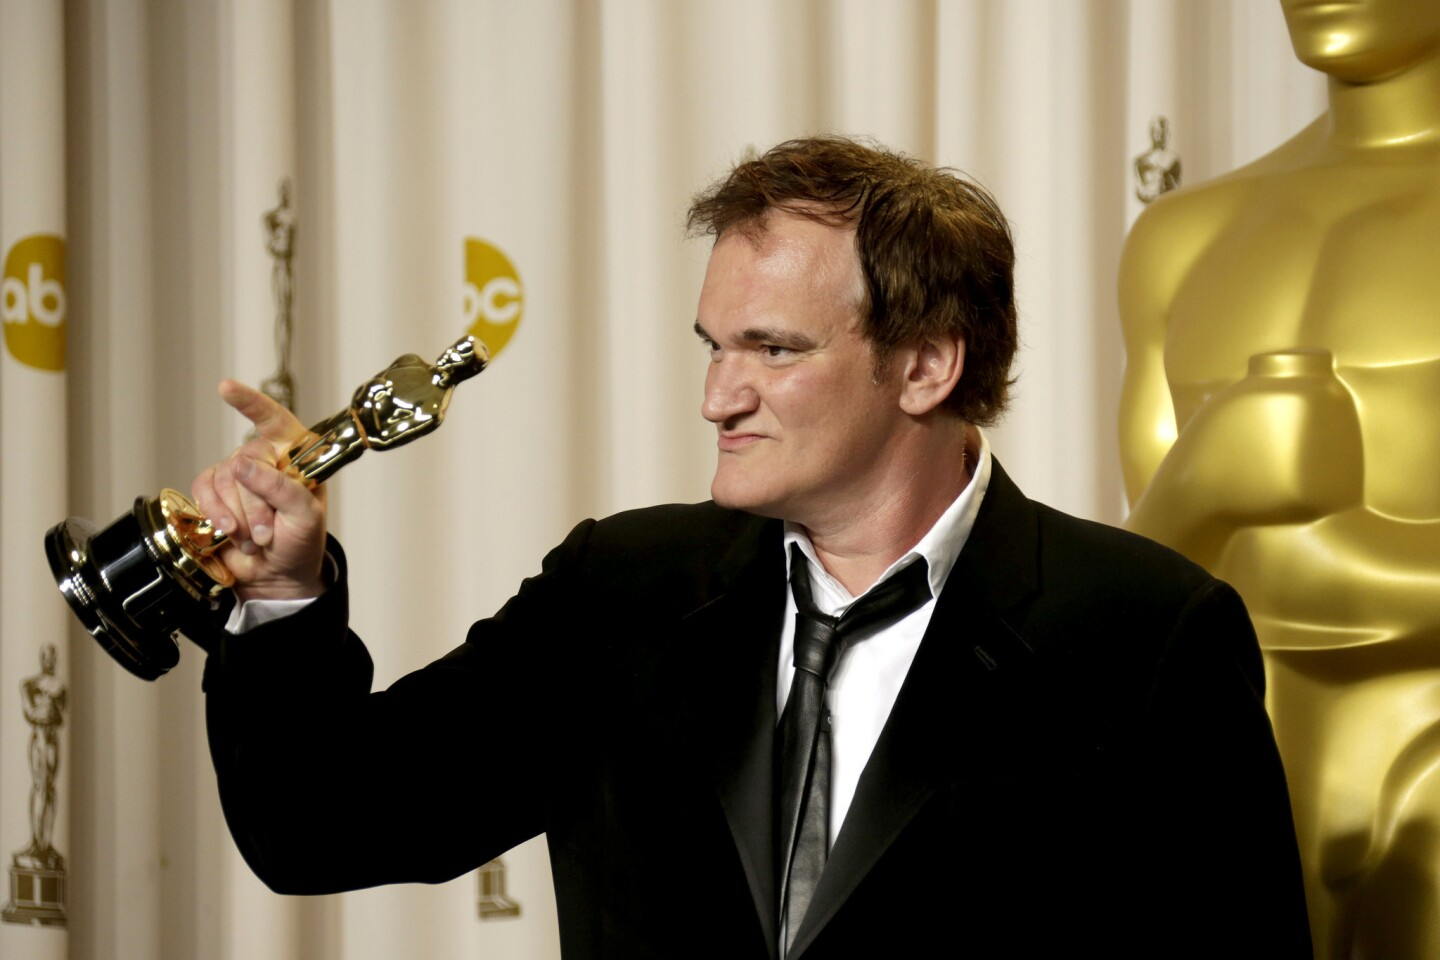 """""""I think an adult audience is really rising up,"""" the """"Django Unchained"""" writer-director said, and that's a good thing. """"That we're not making movies for teenagers anymore is kind of cool, especially now that I'm not a teenager anymore."""" He won the Oscar for original screenplay."""